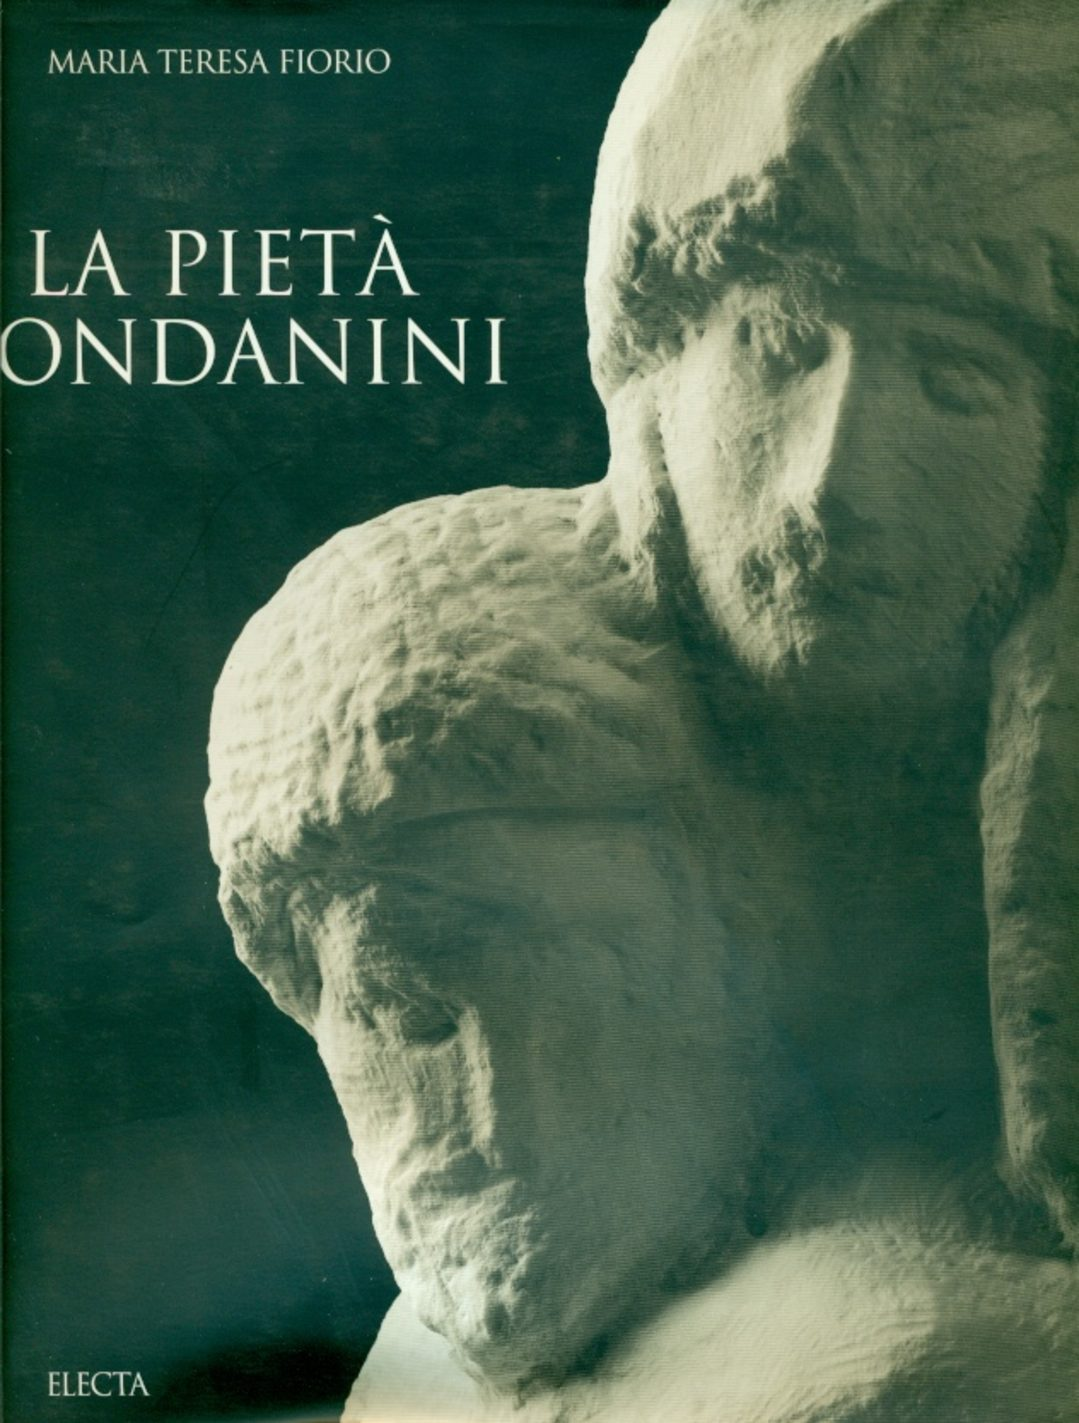 https://cbccoop.it/app/uploads/2017/06/M.Fiorio-PIETA-Rondanini-Vedovello.-pdf.jpg